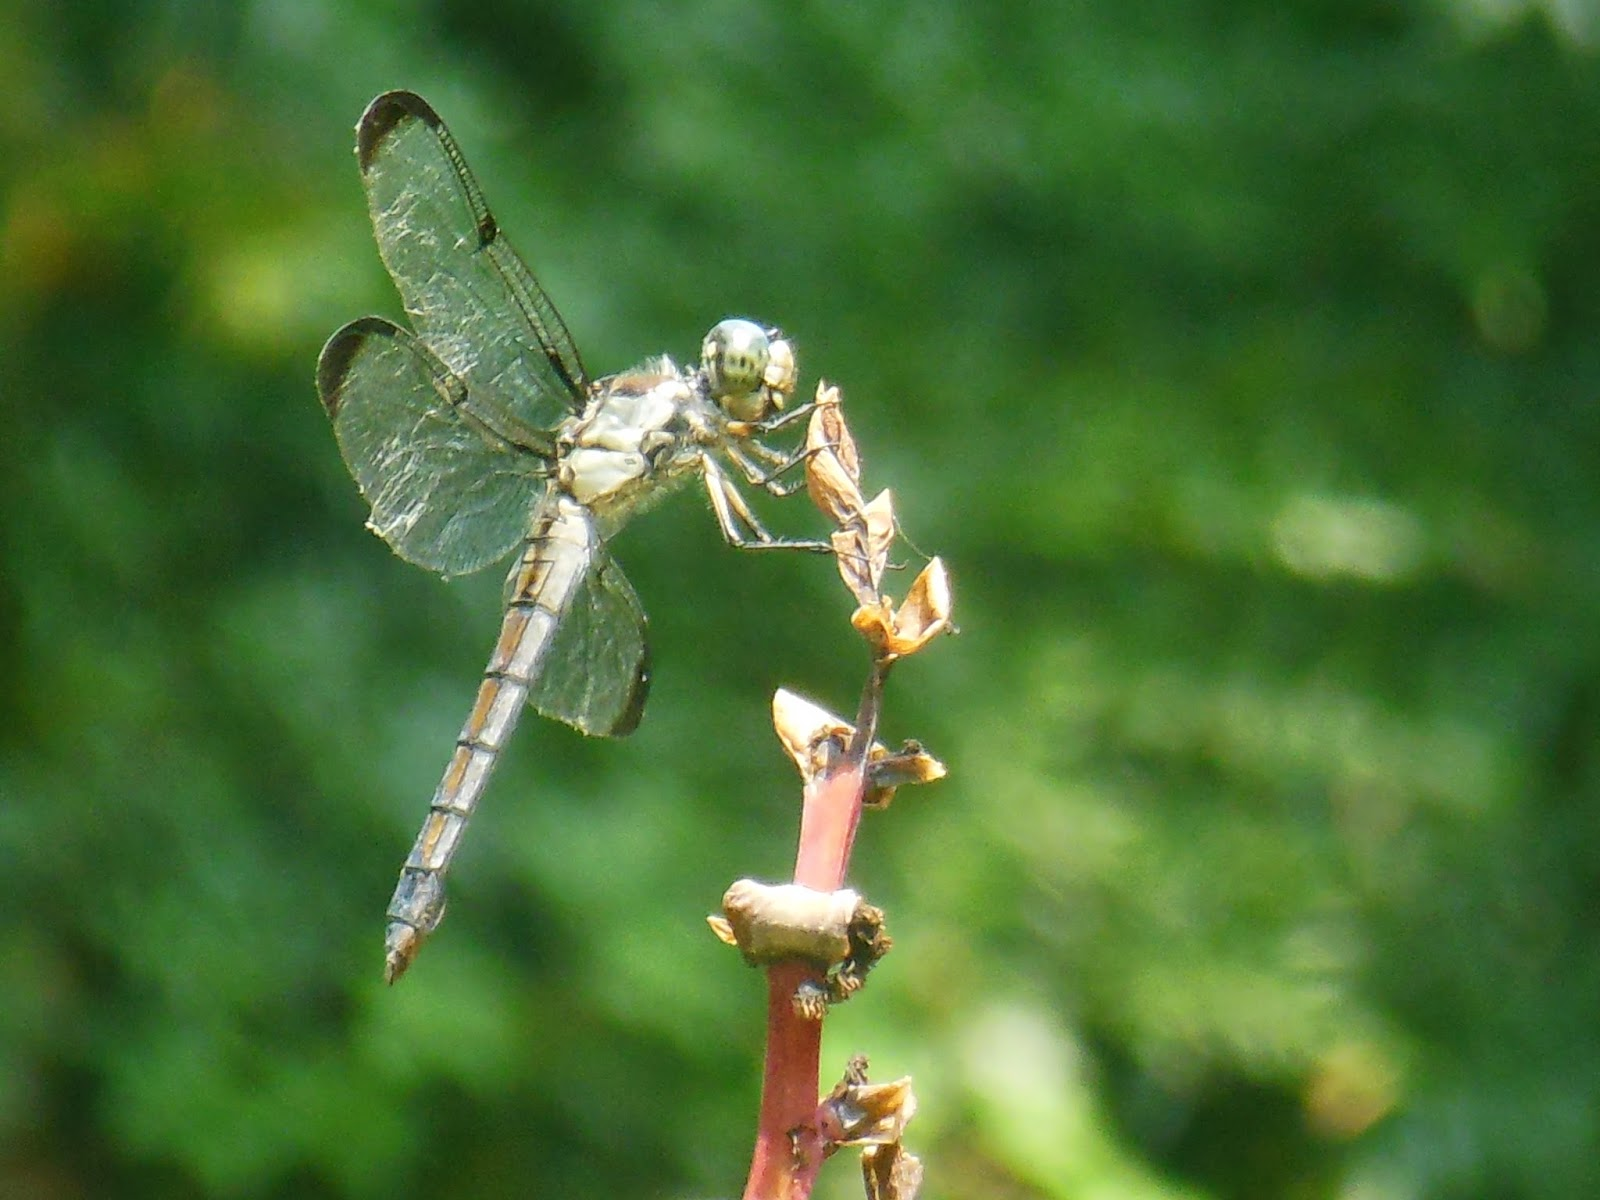 The Mind Of Aquarius Symbolic Qualties Of The Dragonfly Damselfly